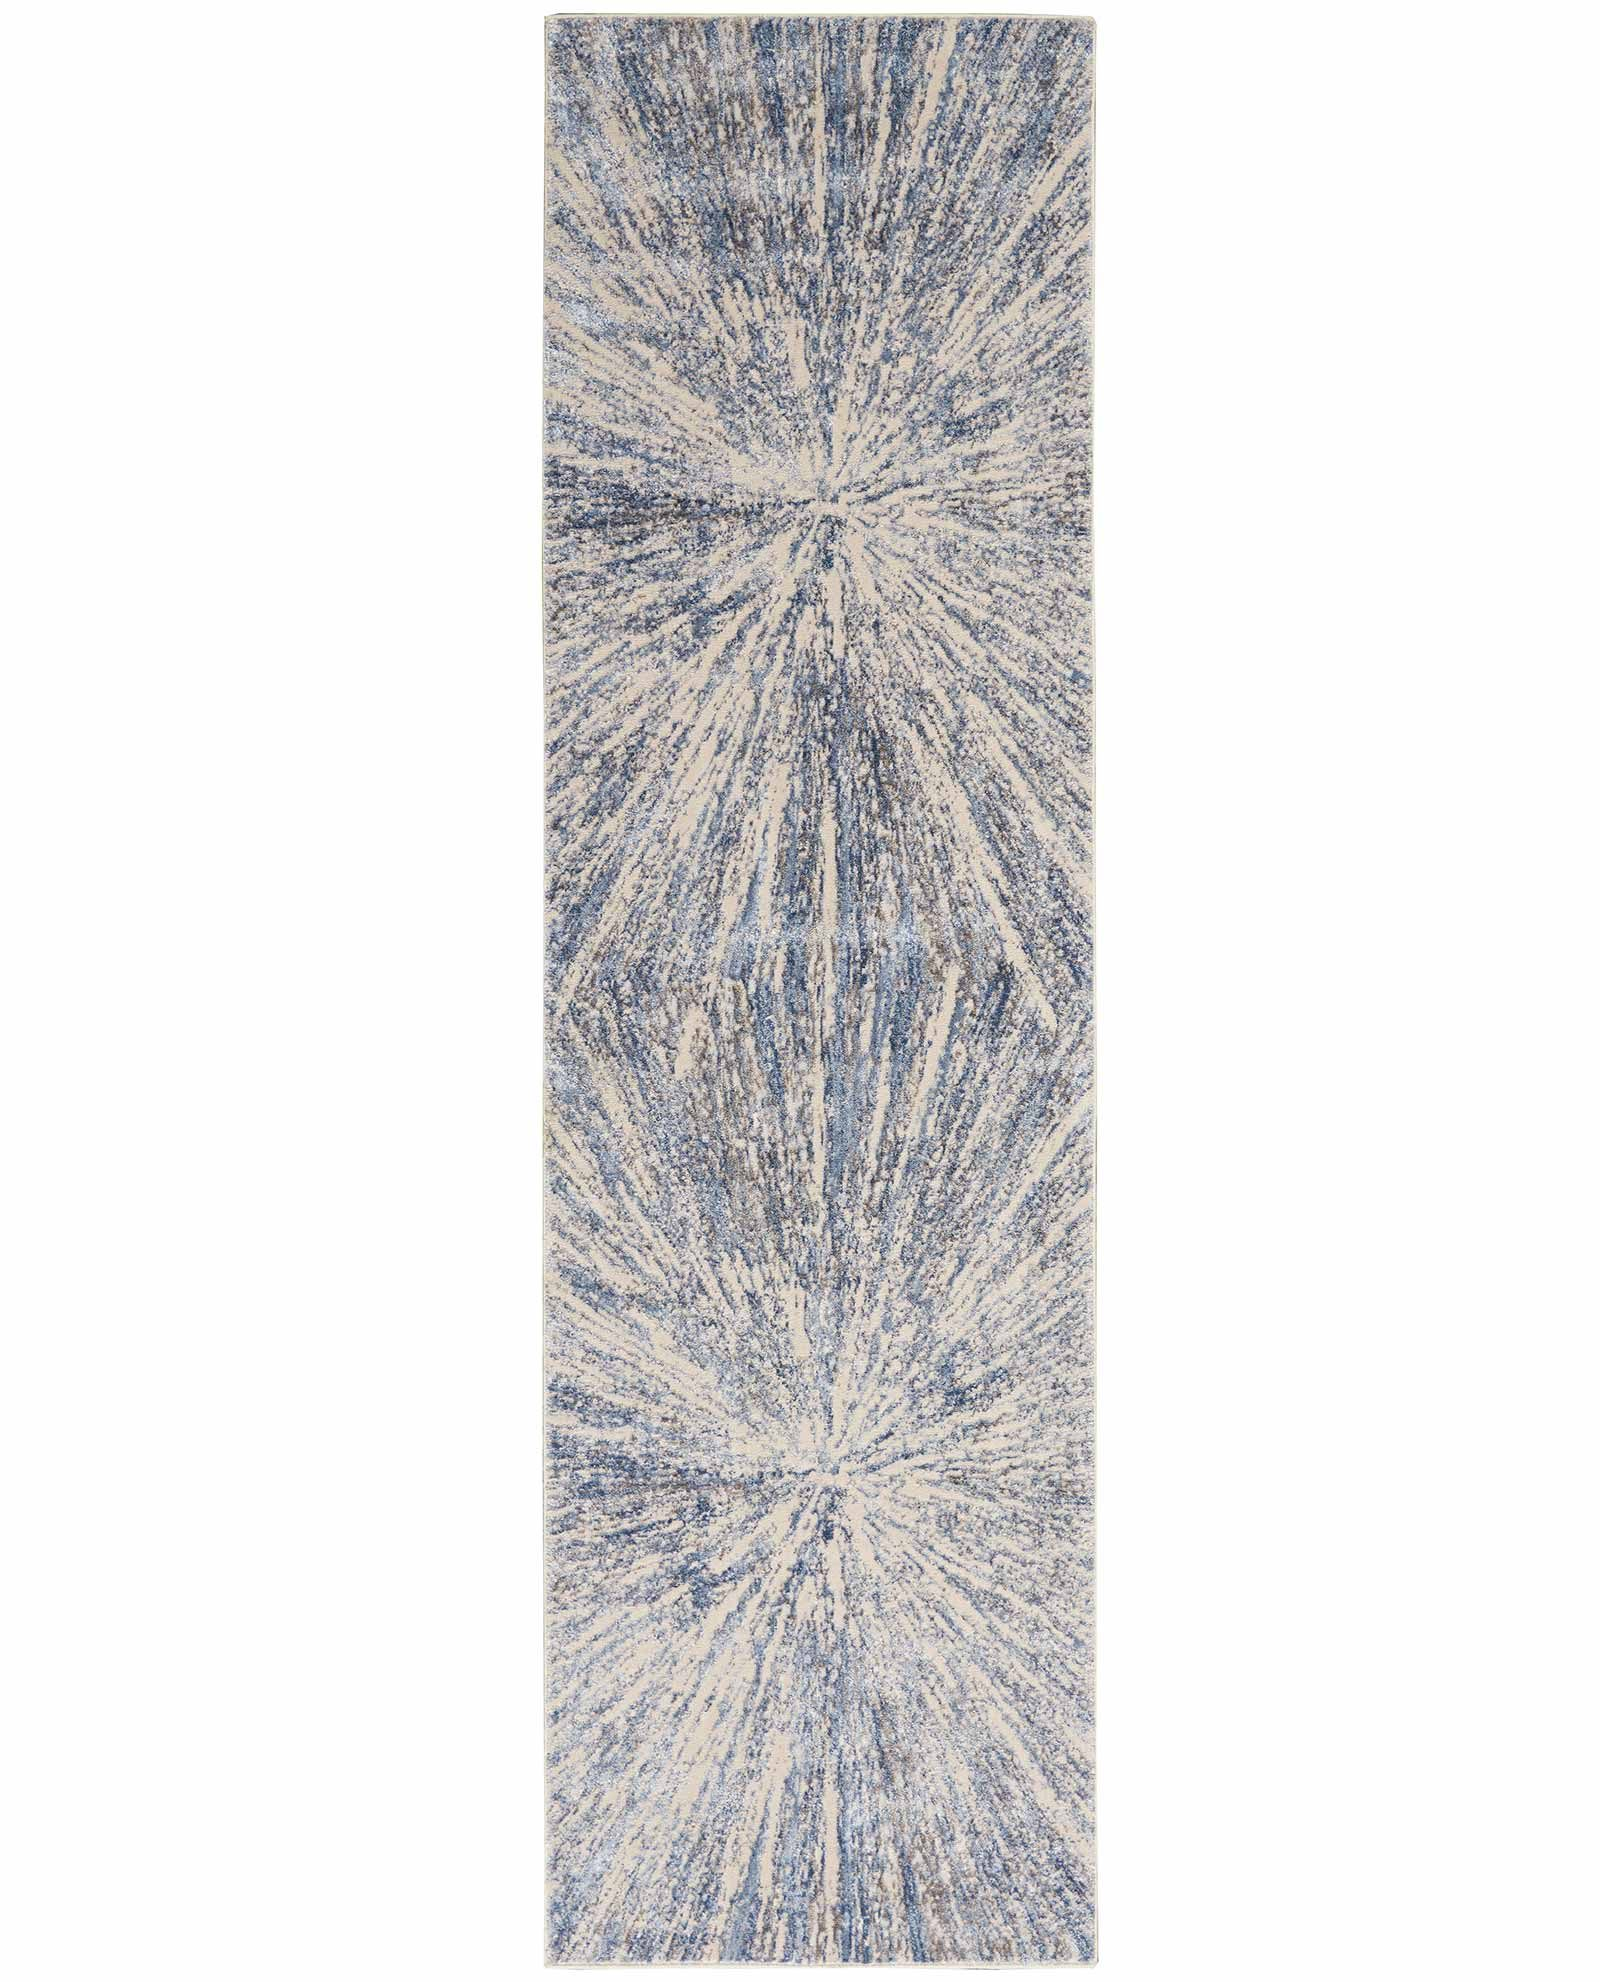 Nourison rug Silky Textures SLY05 BLUE GREY 2x8 099446710208 flat